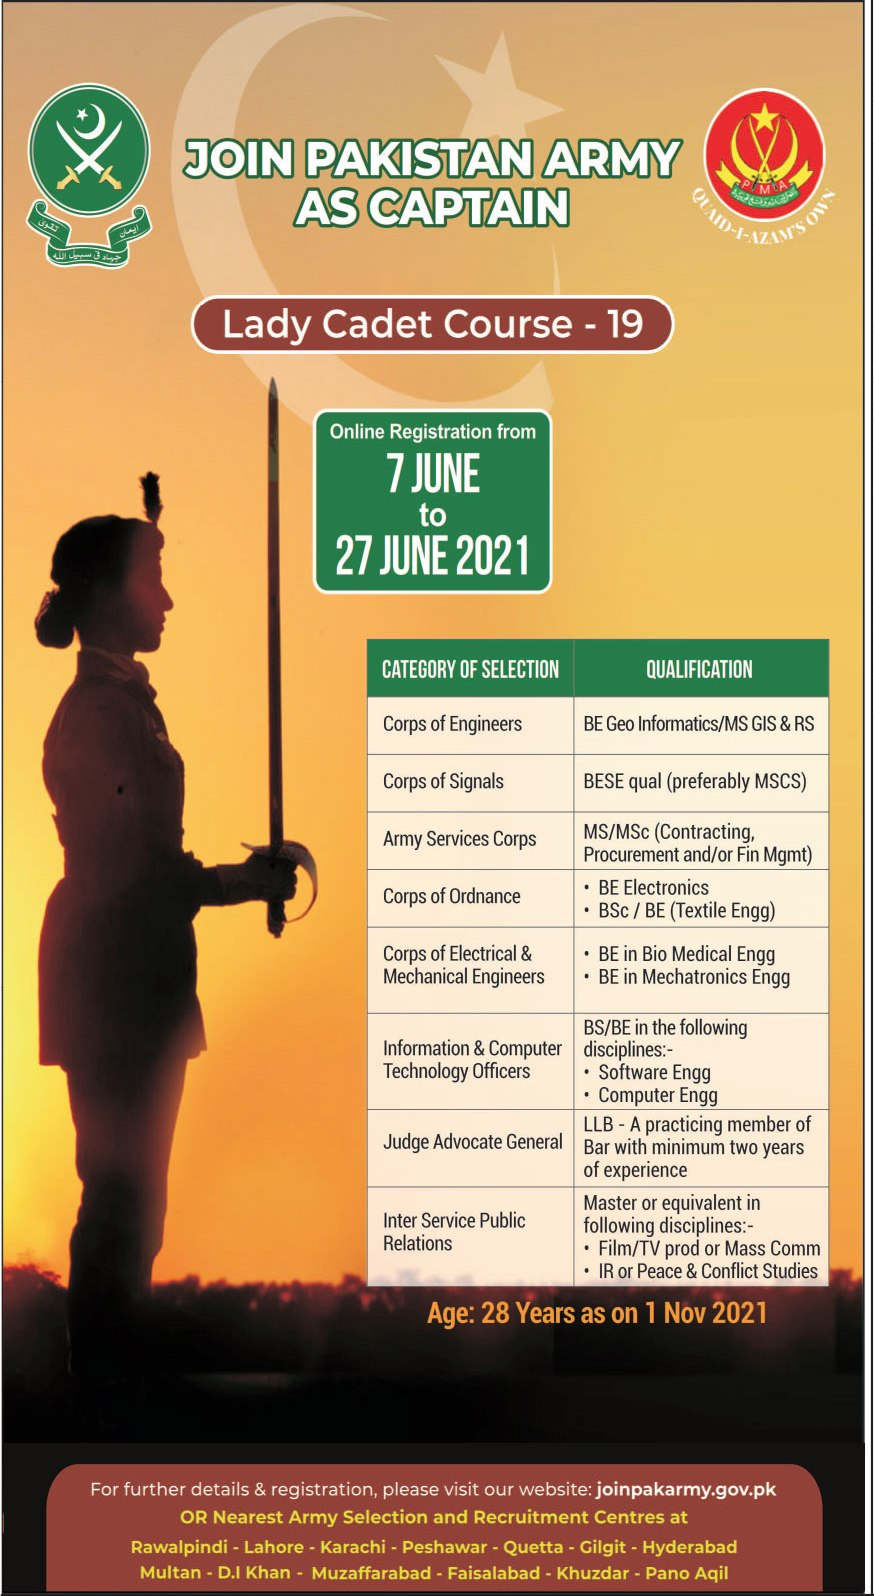 Join Pakistan Army as Captain Lady Cadet Course 19